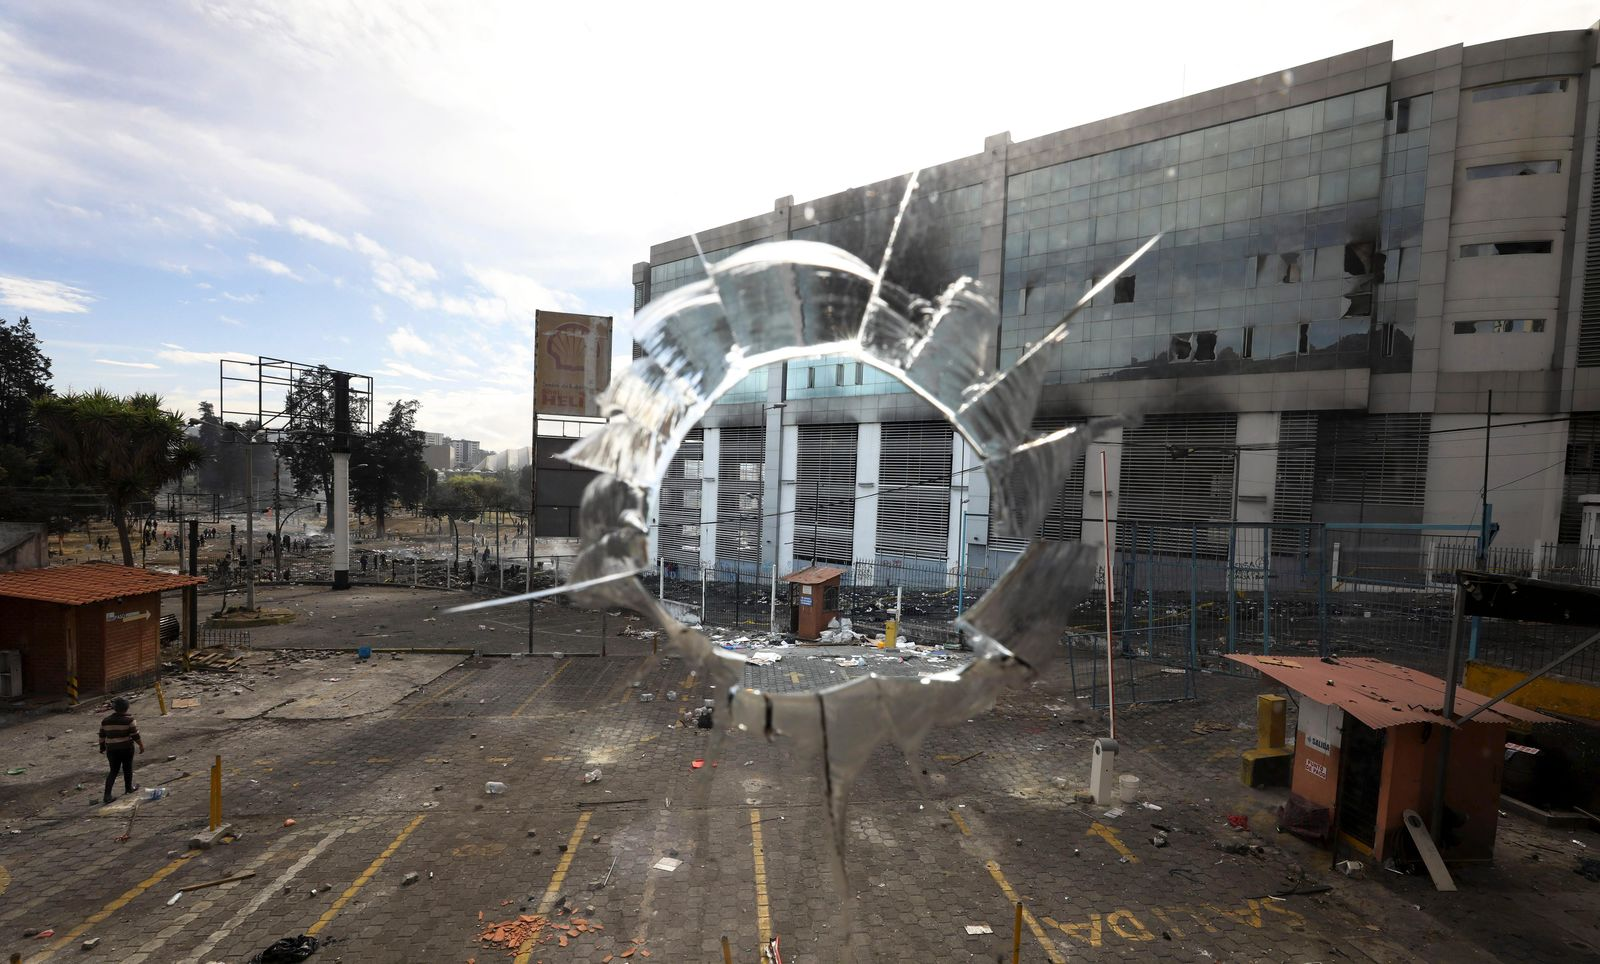 Photographed through a broken window, the national auditor's office stands across the street, damaged after it was attacked by anti-government protesters in Quito, Ecuador, Sunday, Oct. 13, 2019. (AP Photo/Fernando Vergara)